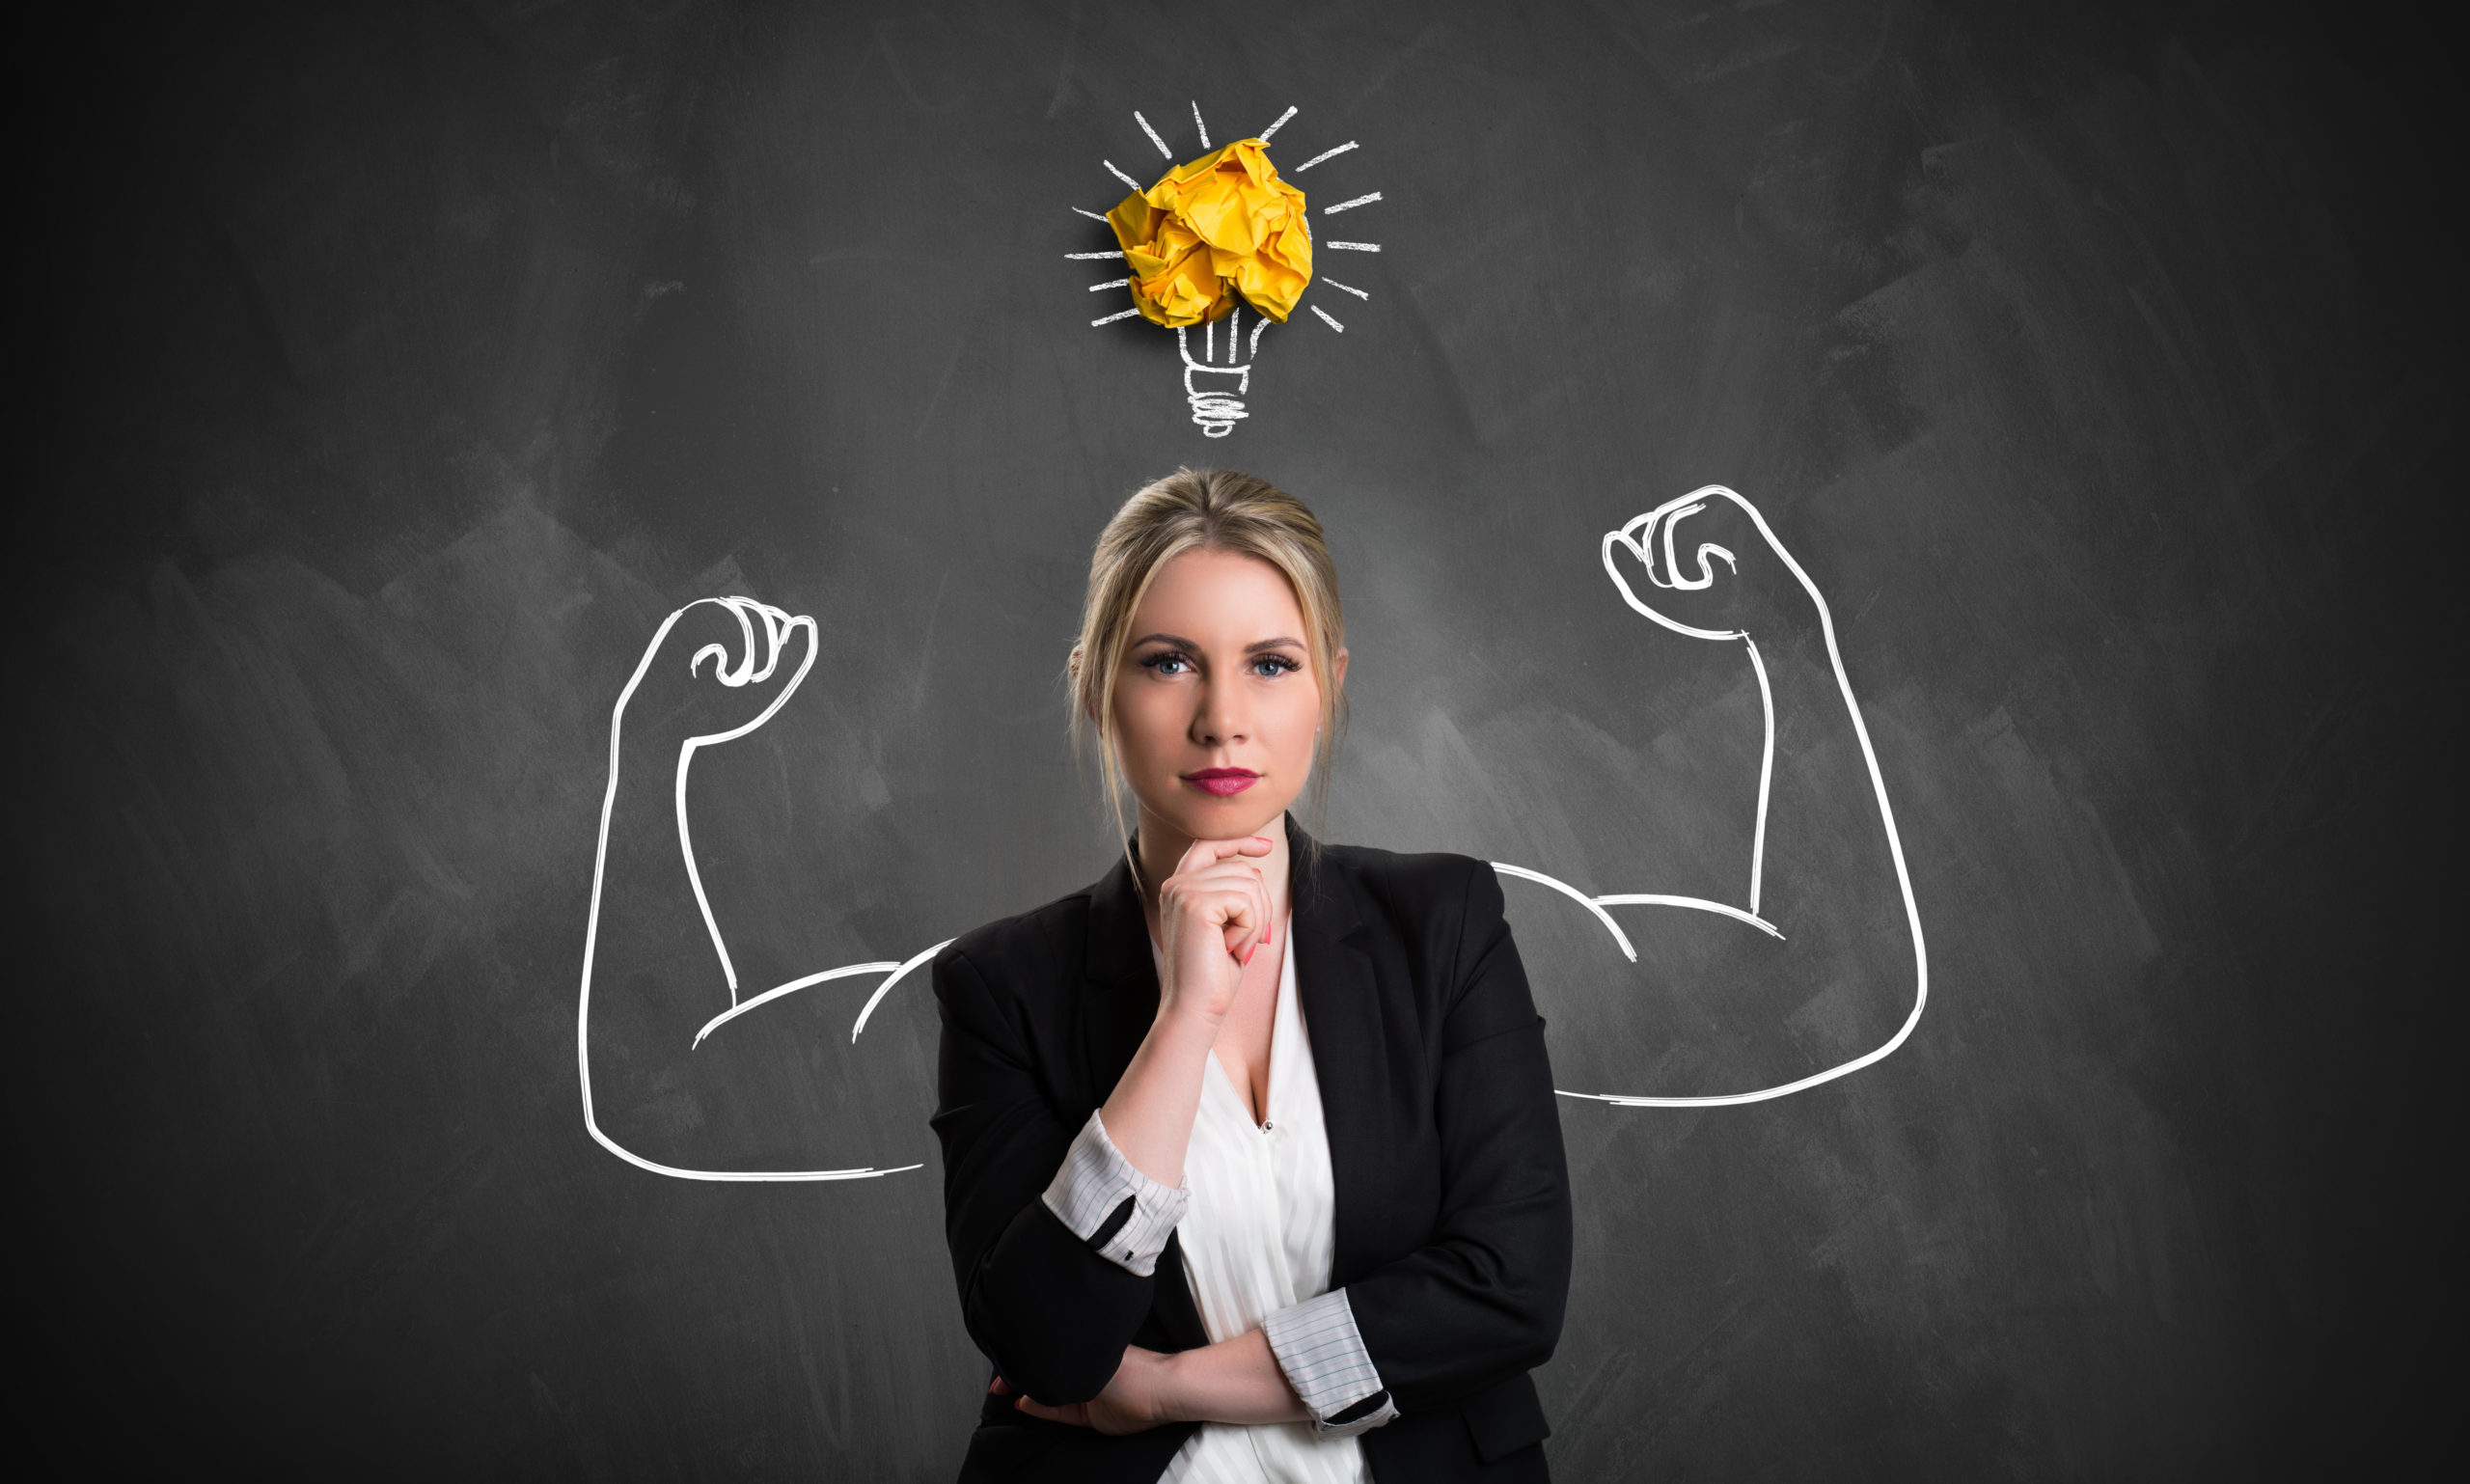 Self-Empowerment: Things You Can Do To Empower Yourself